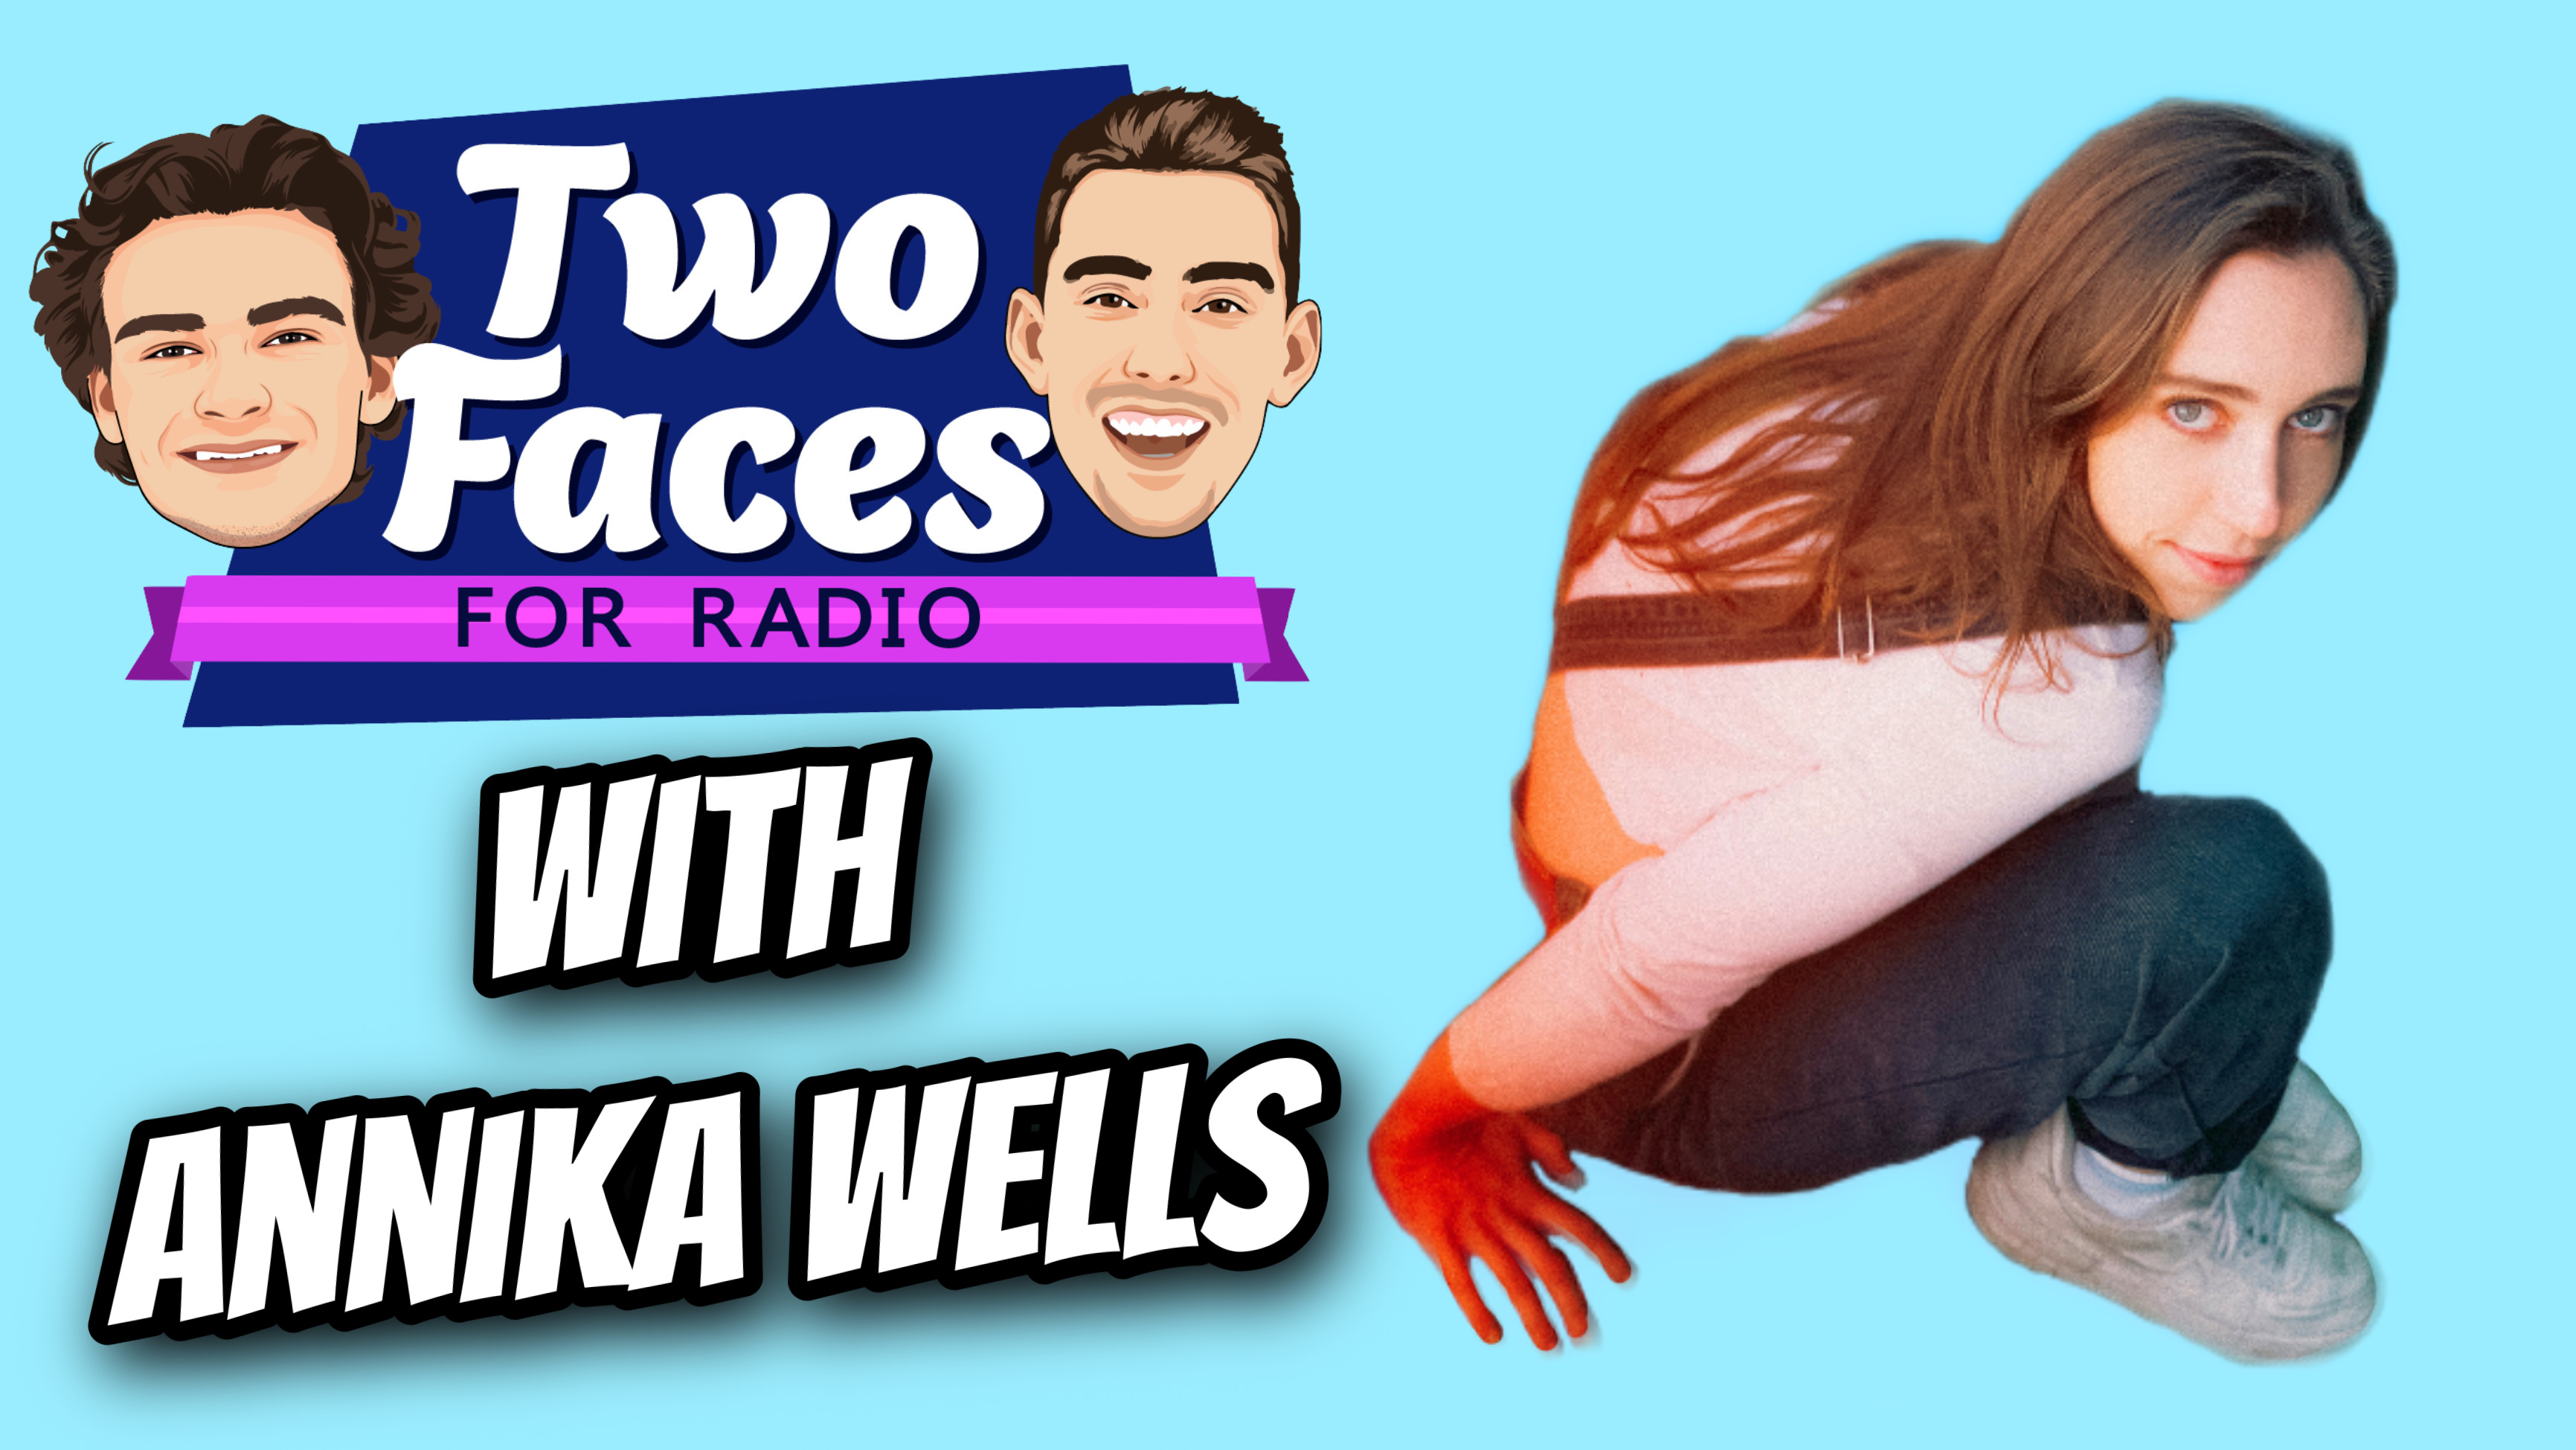 Annika Wells Joins Two Faces For Radio [WATCH]